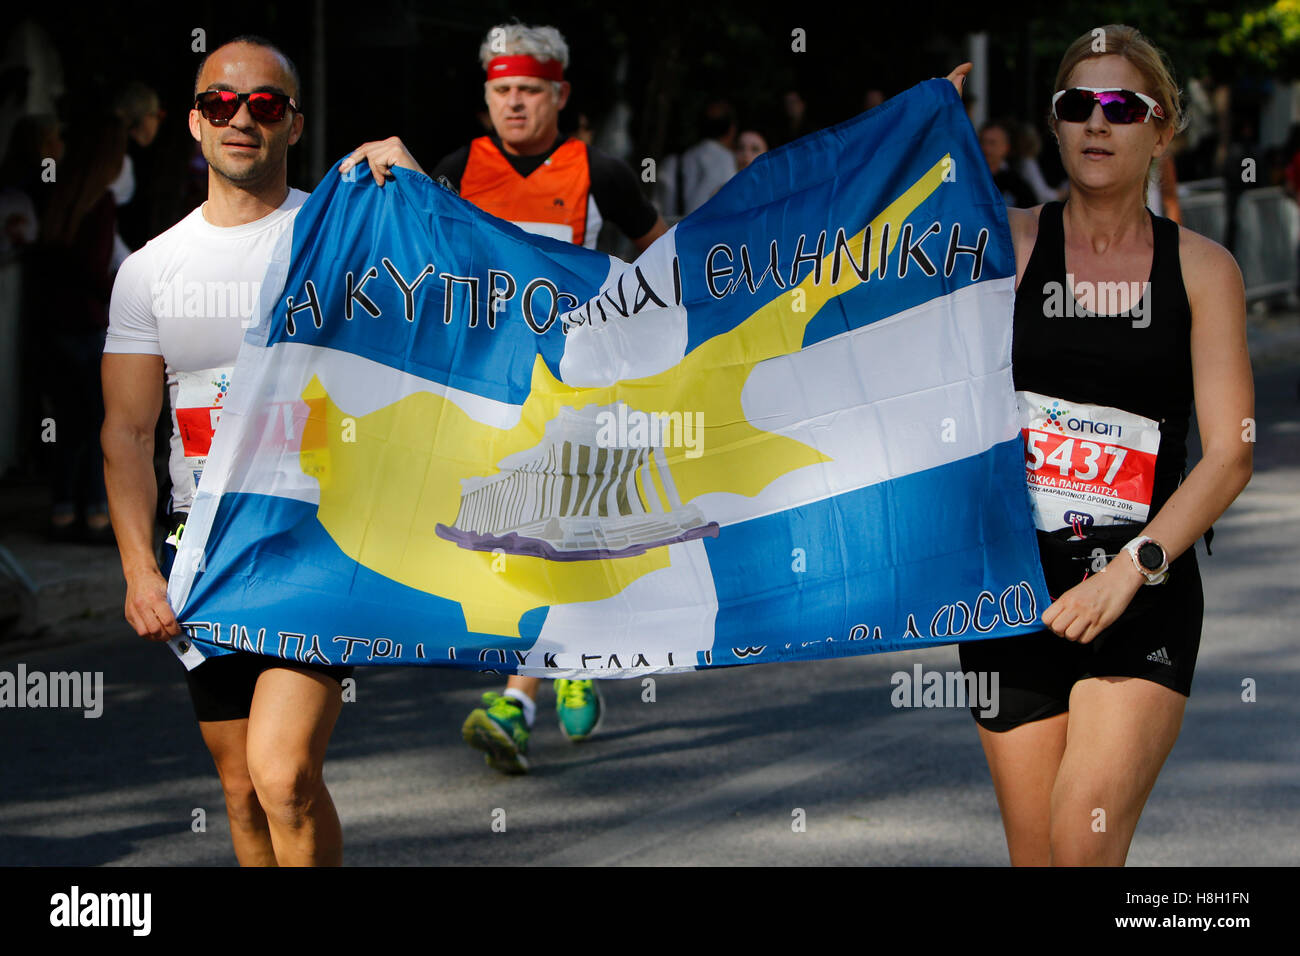 Athens, Greece. 13th November 2016. Two runners carry a Greek Cypriot flag between them. Thousands of people from Stock Photo